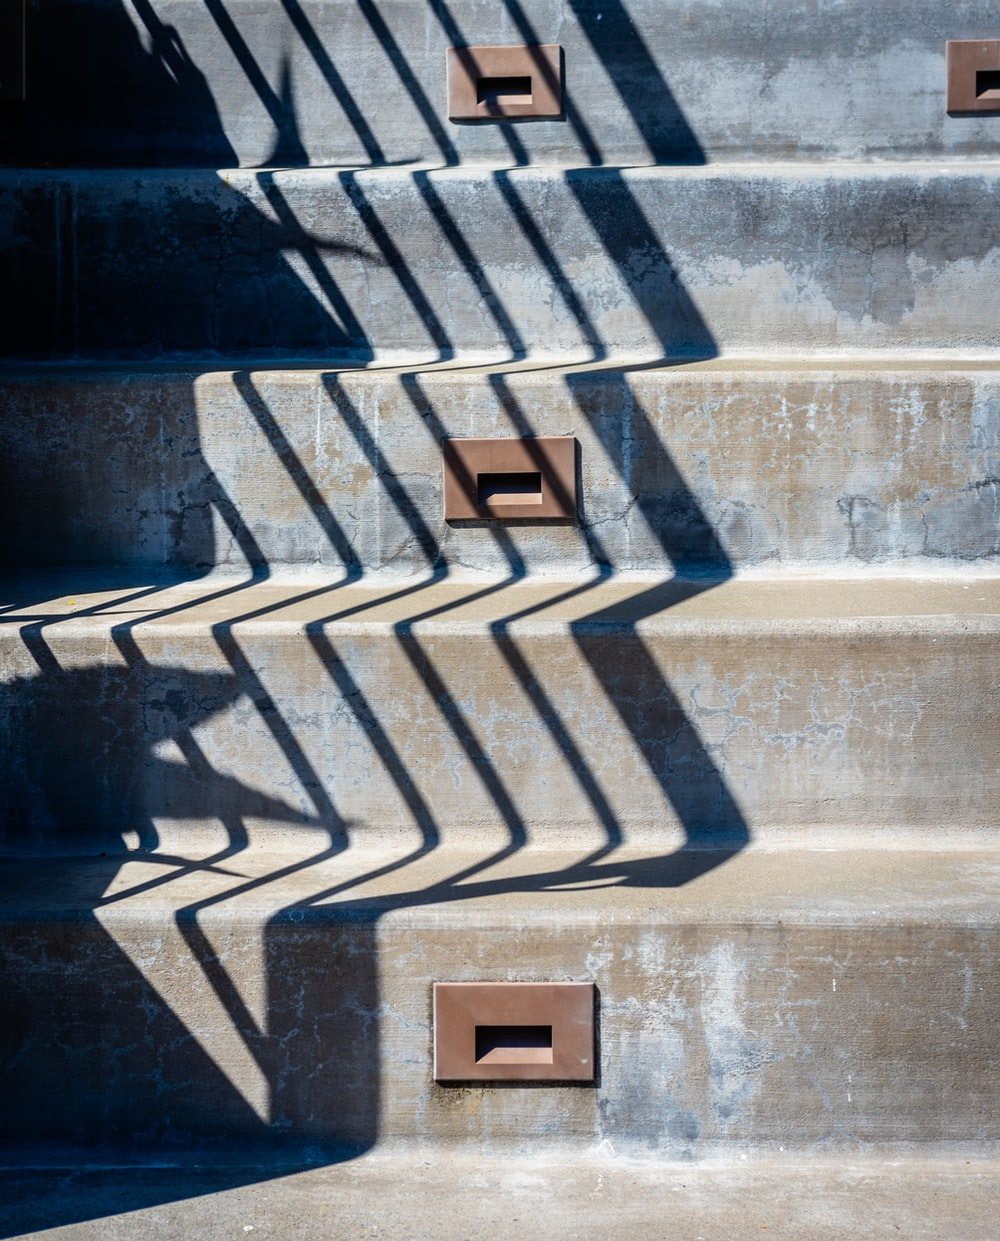 brown wooden box on gray concrete staircase